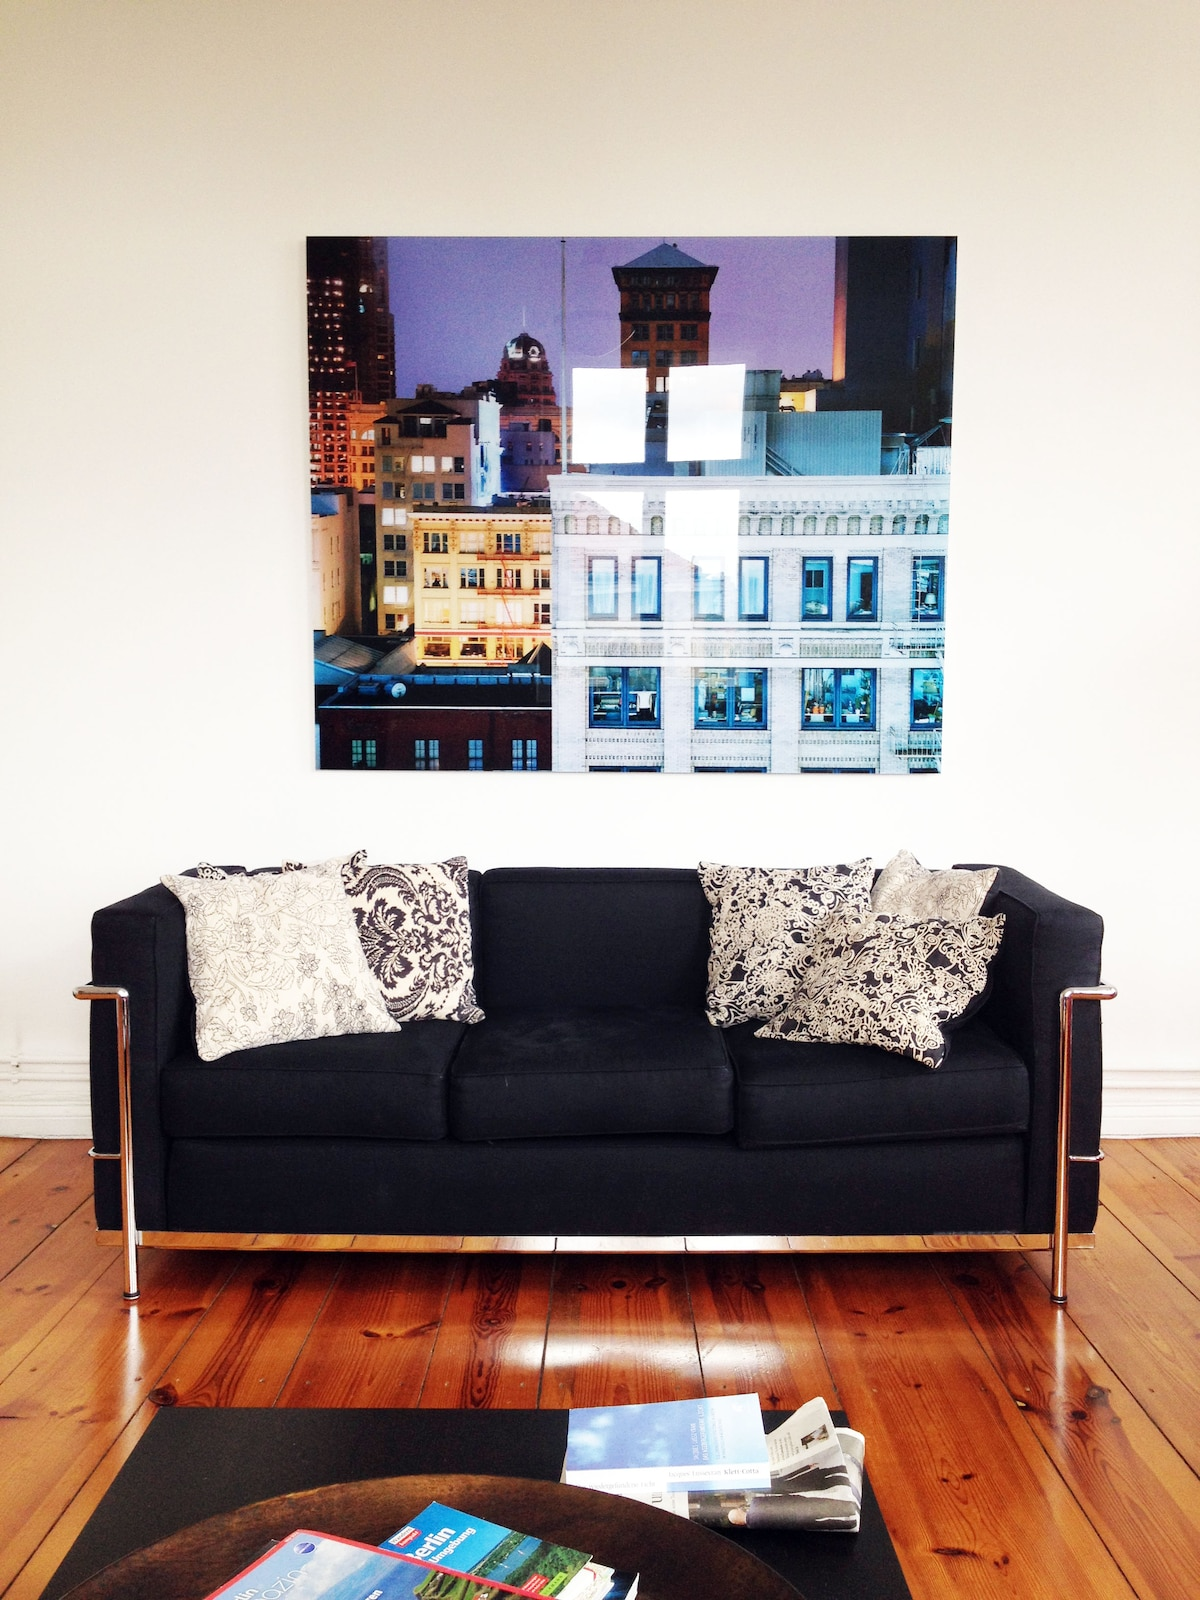 Architectural photography of San Francisco in living room